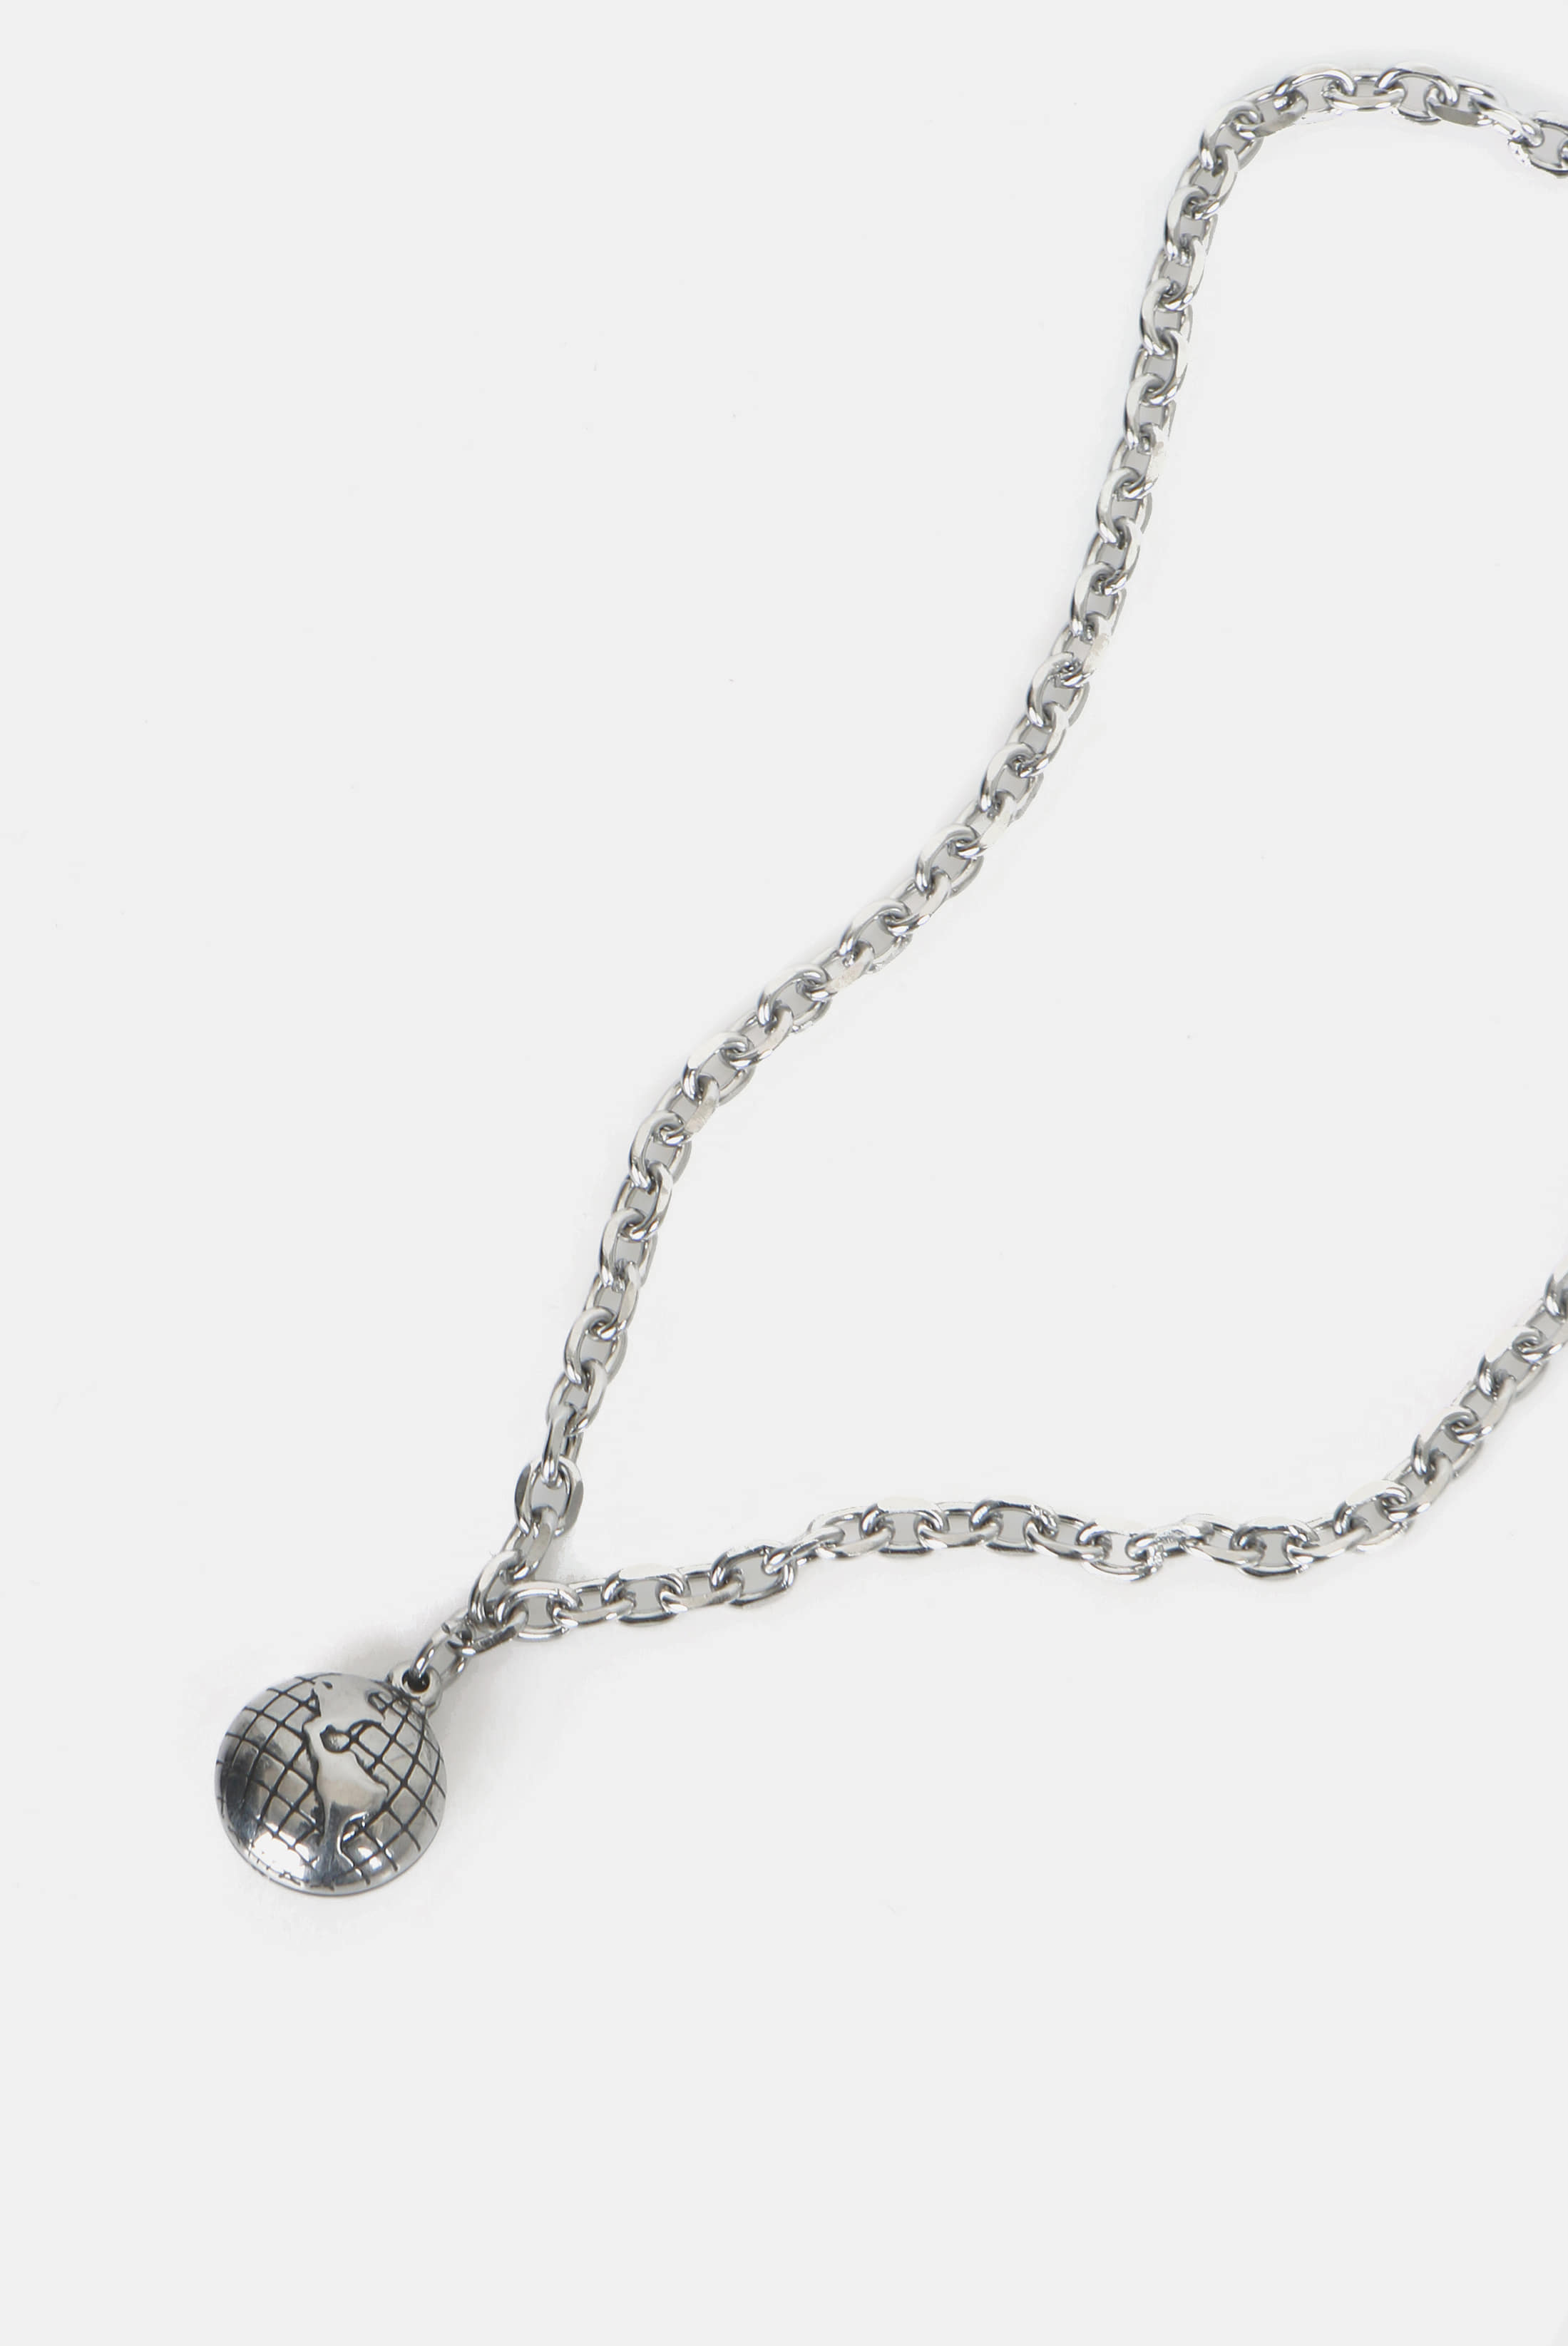 Surgical_Steel Globe_Necklace